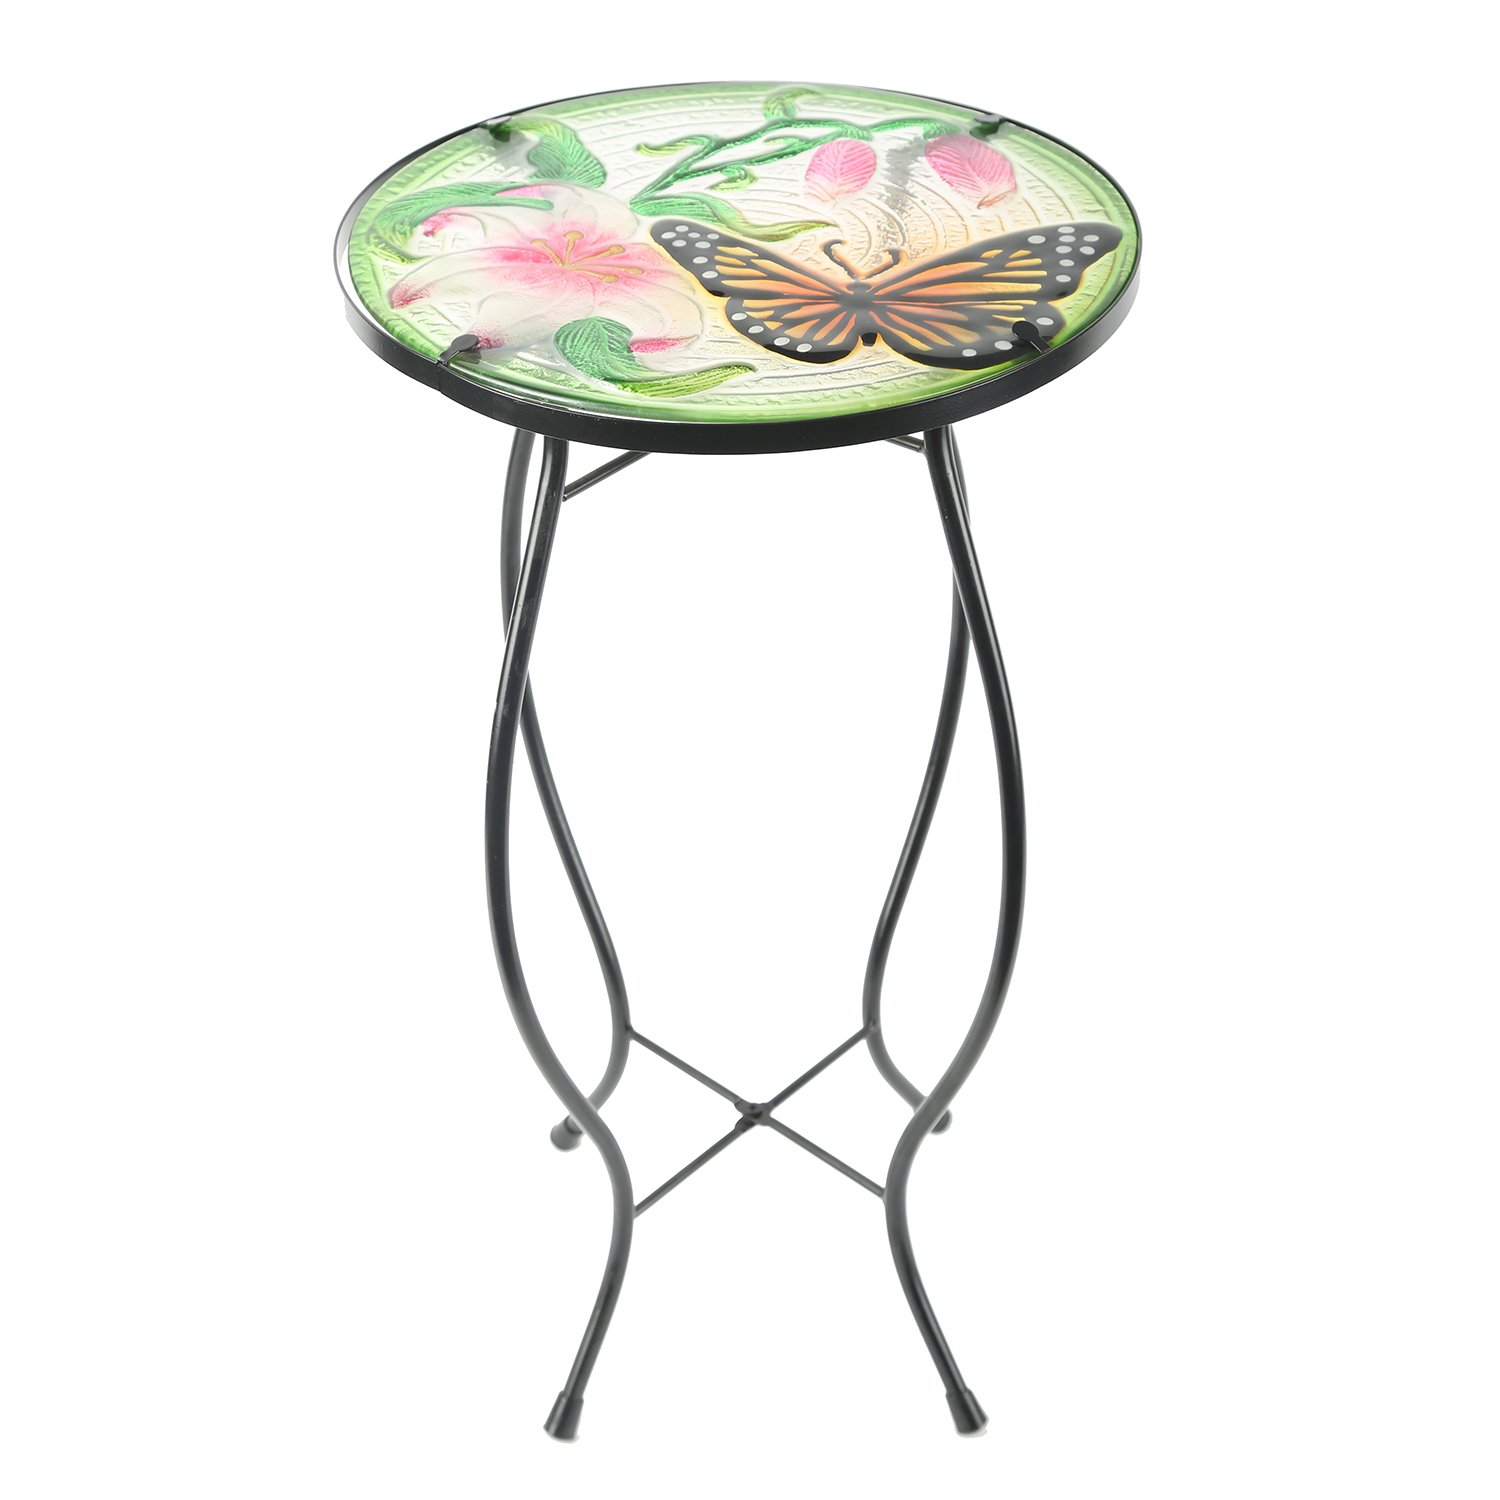 cedar home side table outdoor garden patio metal accent cbl desk with round hand painted glass pink target ott pier one imports rugs unfinished small end farm style sofa astoria